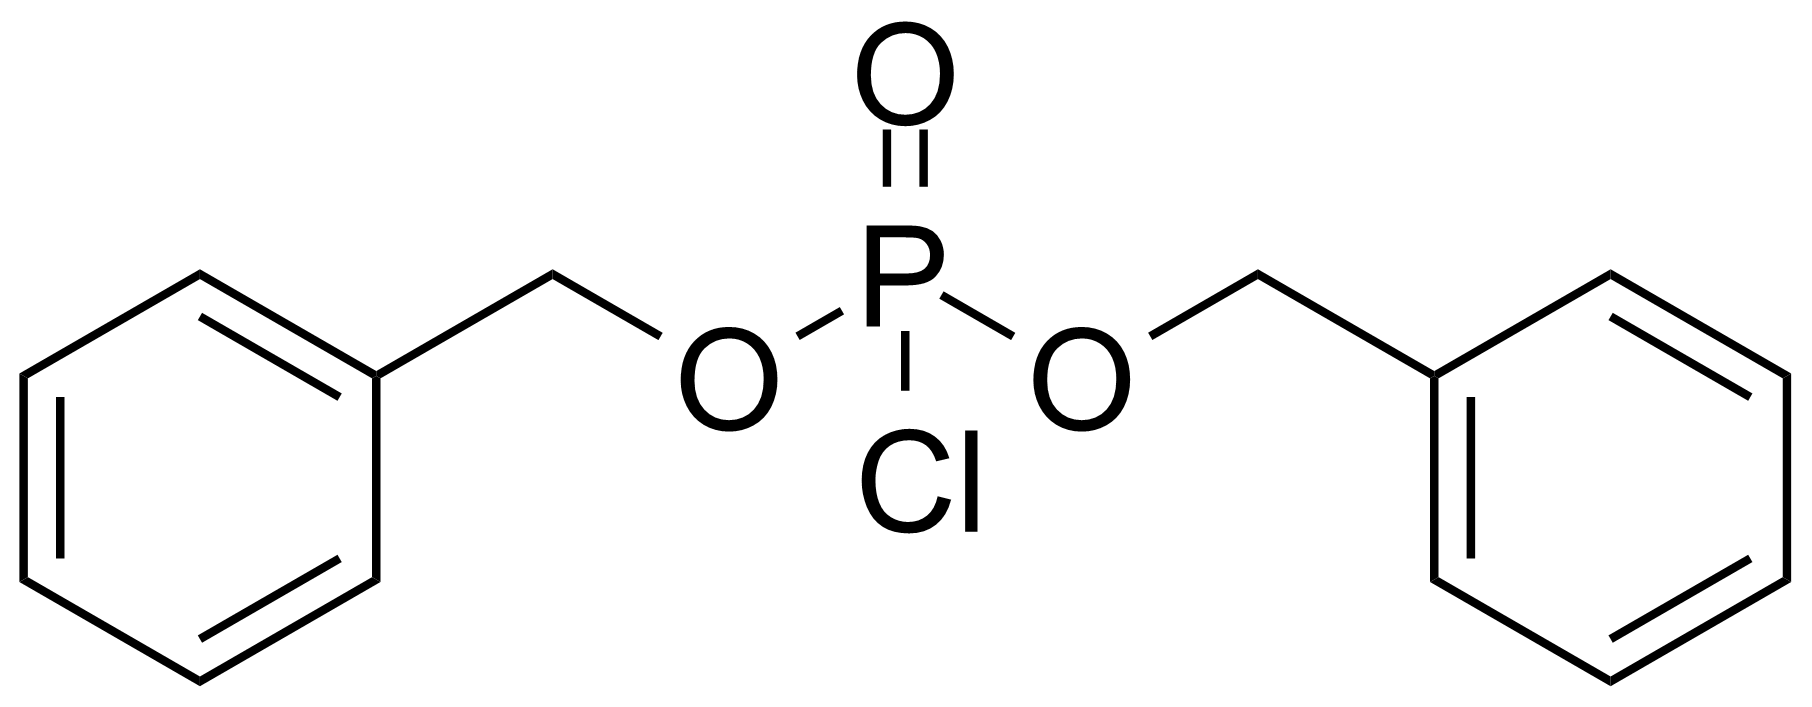 Structure of Dibenzyl chlorophosphate